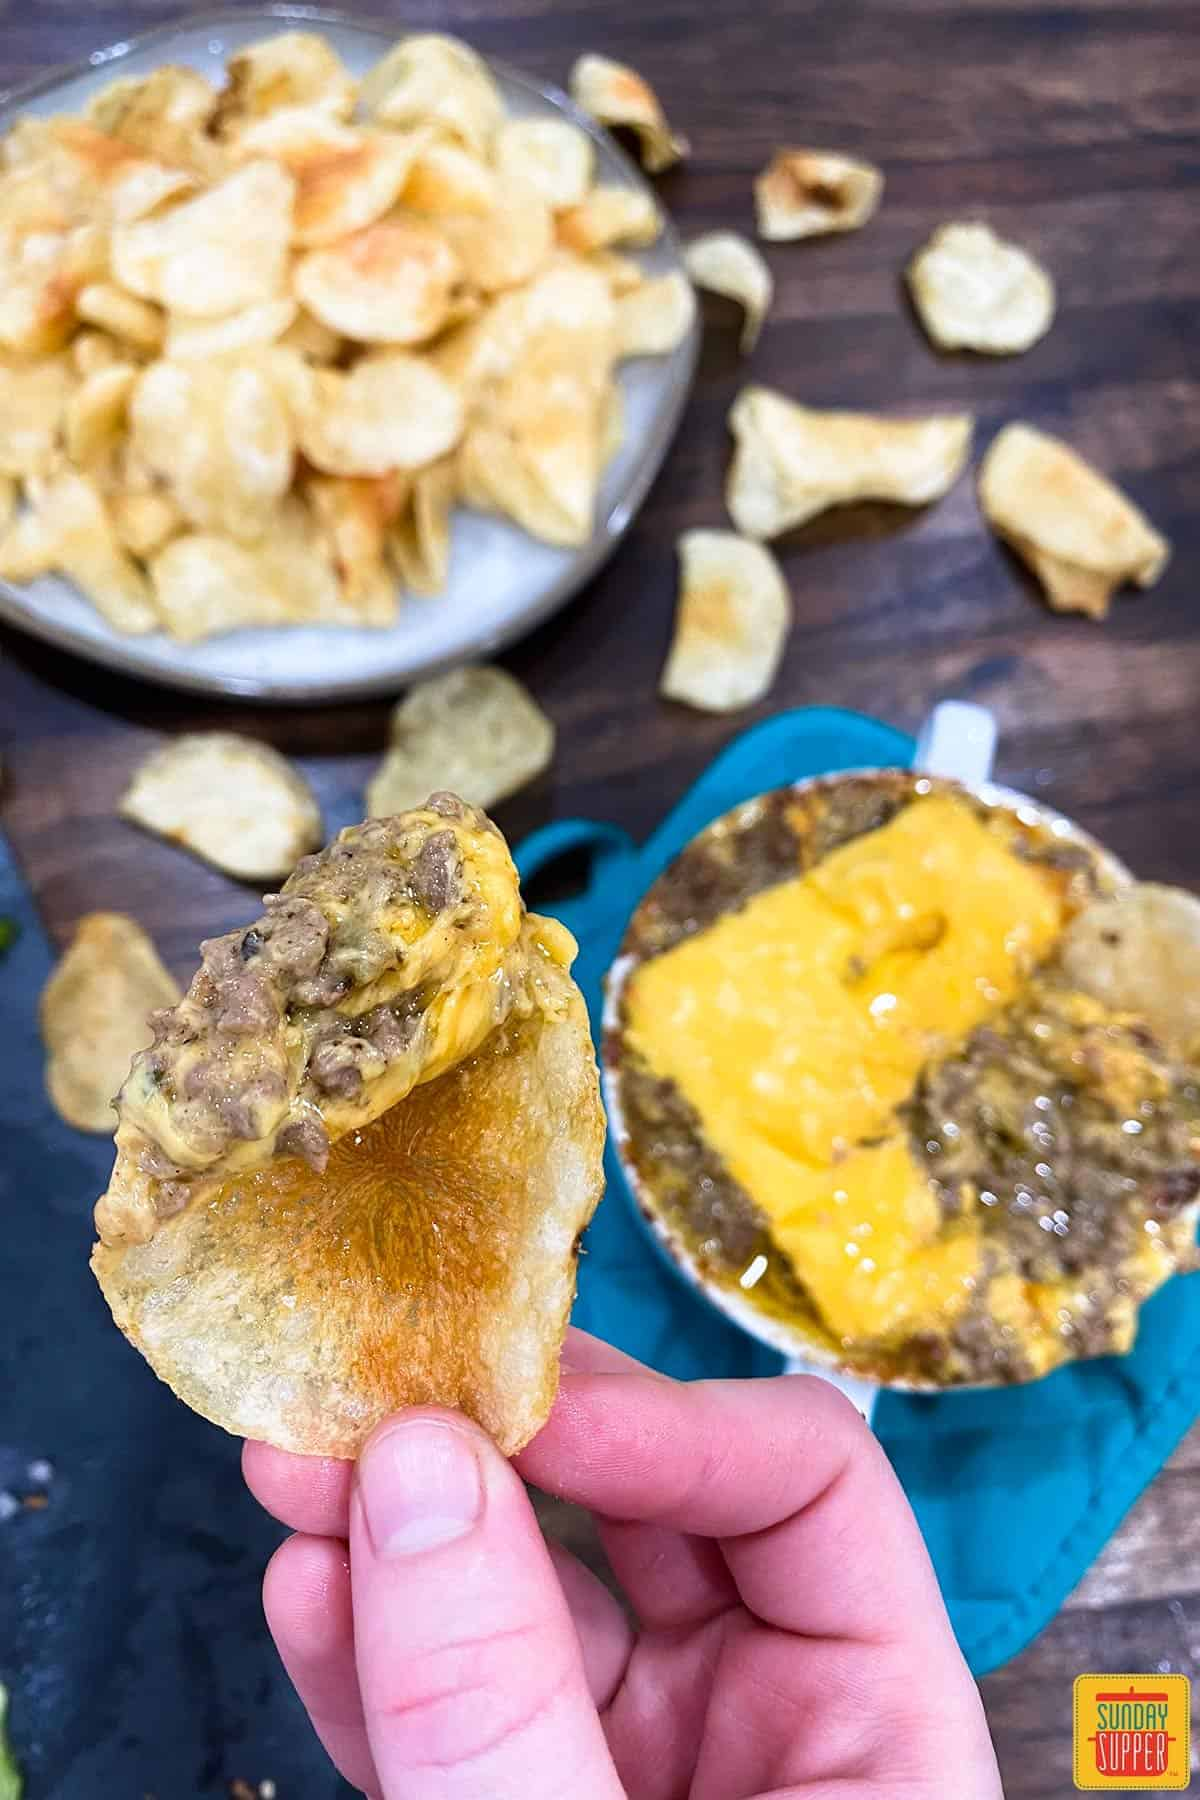 Dipping a chip into the instant pot philly cheese steak dip with cheese on top